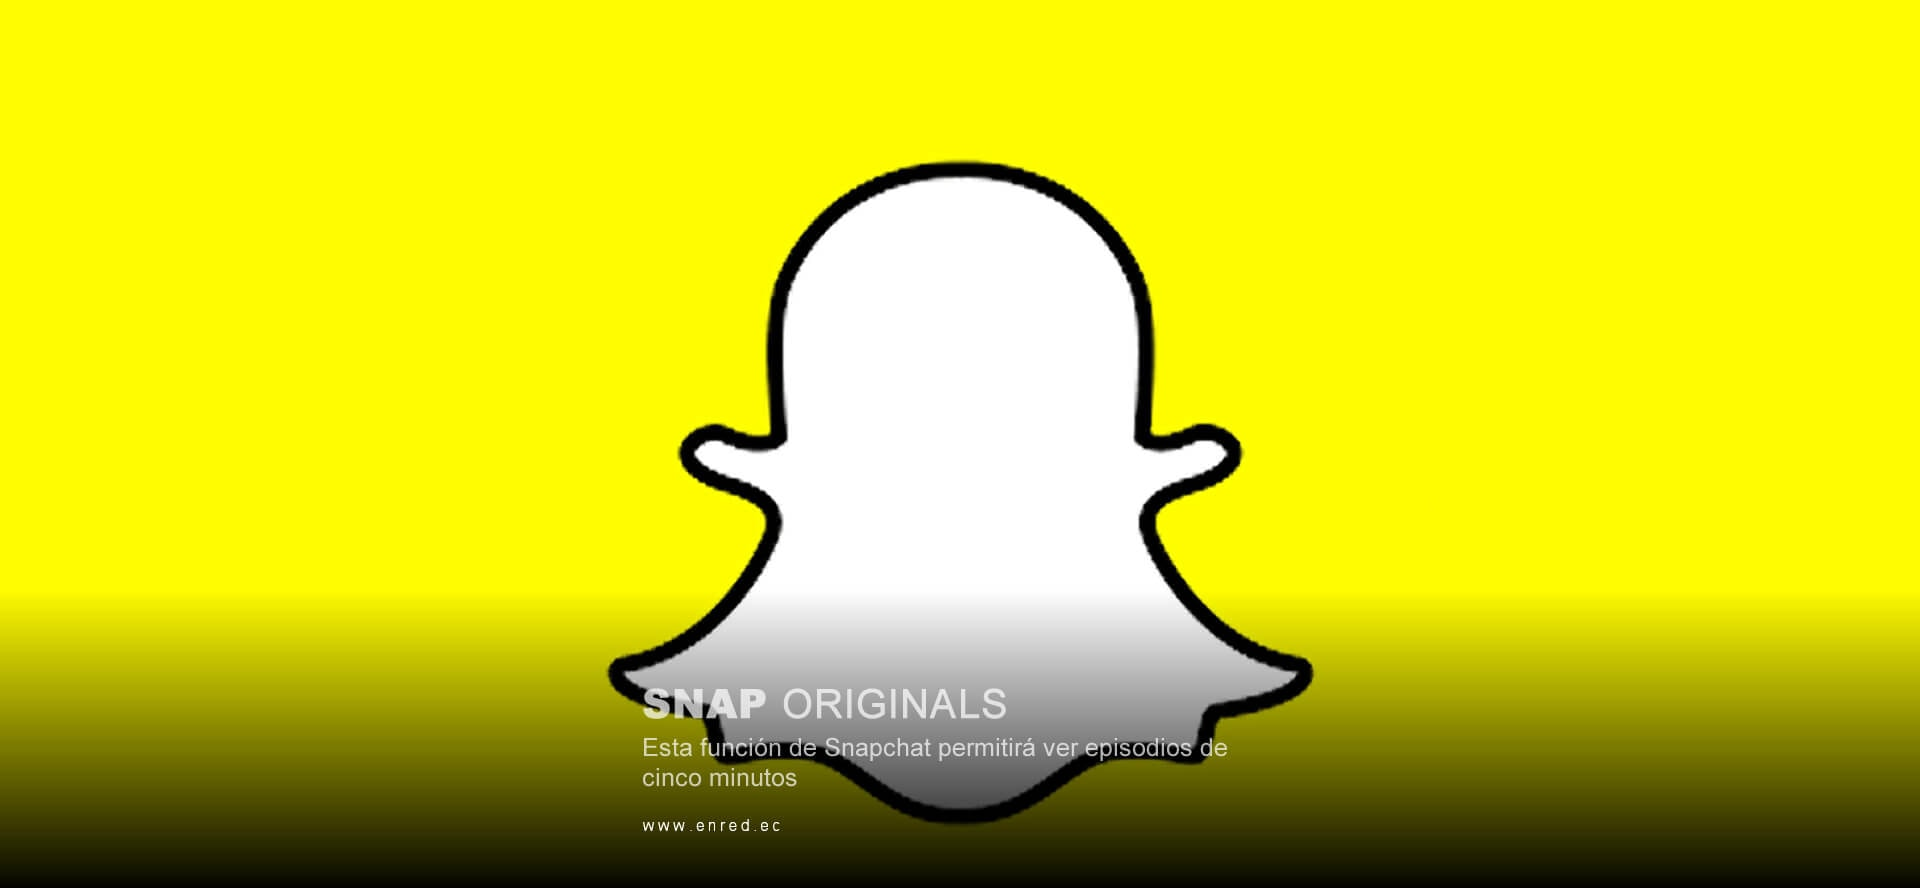 Snap Originals